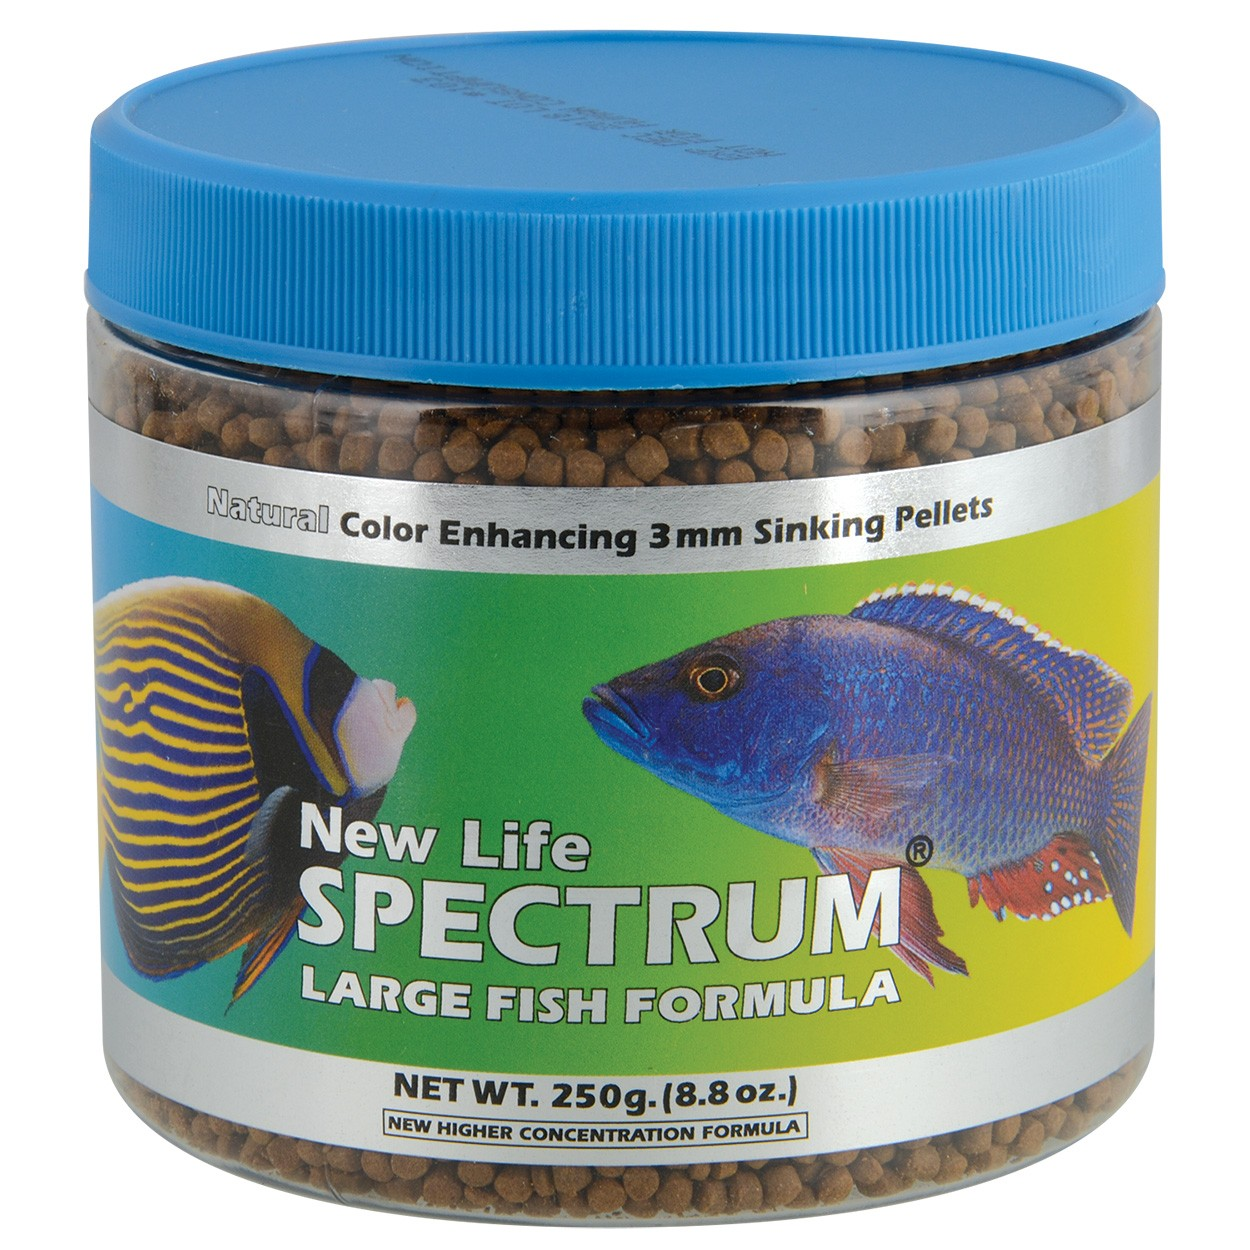 New Life Spectrum Large Fish Formula 3 Mm Sinking Pellets